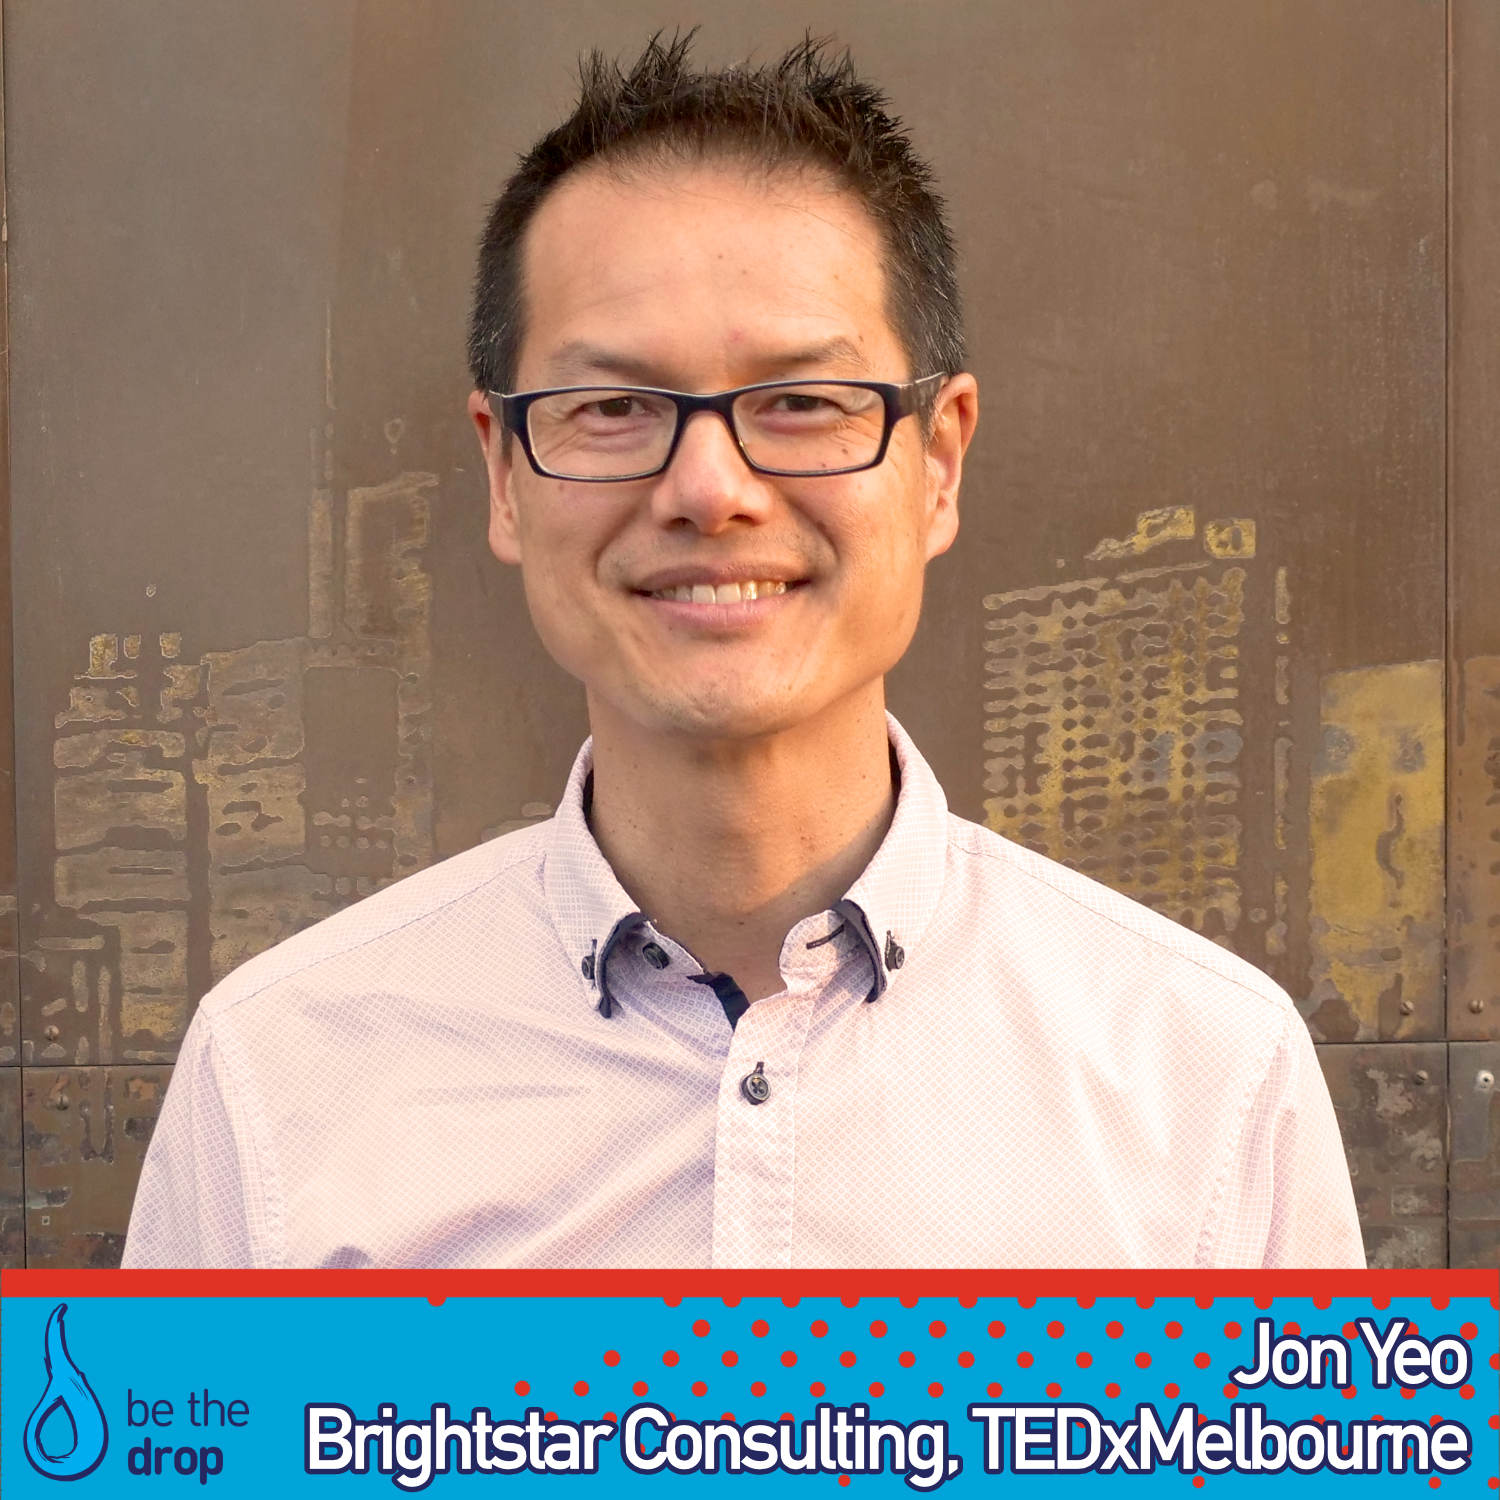 How To Communicate With Impact: Jon Yeo [Podcast]